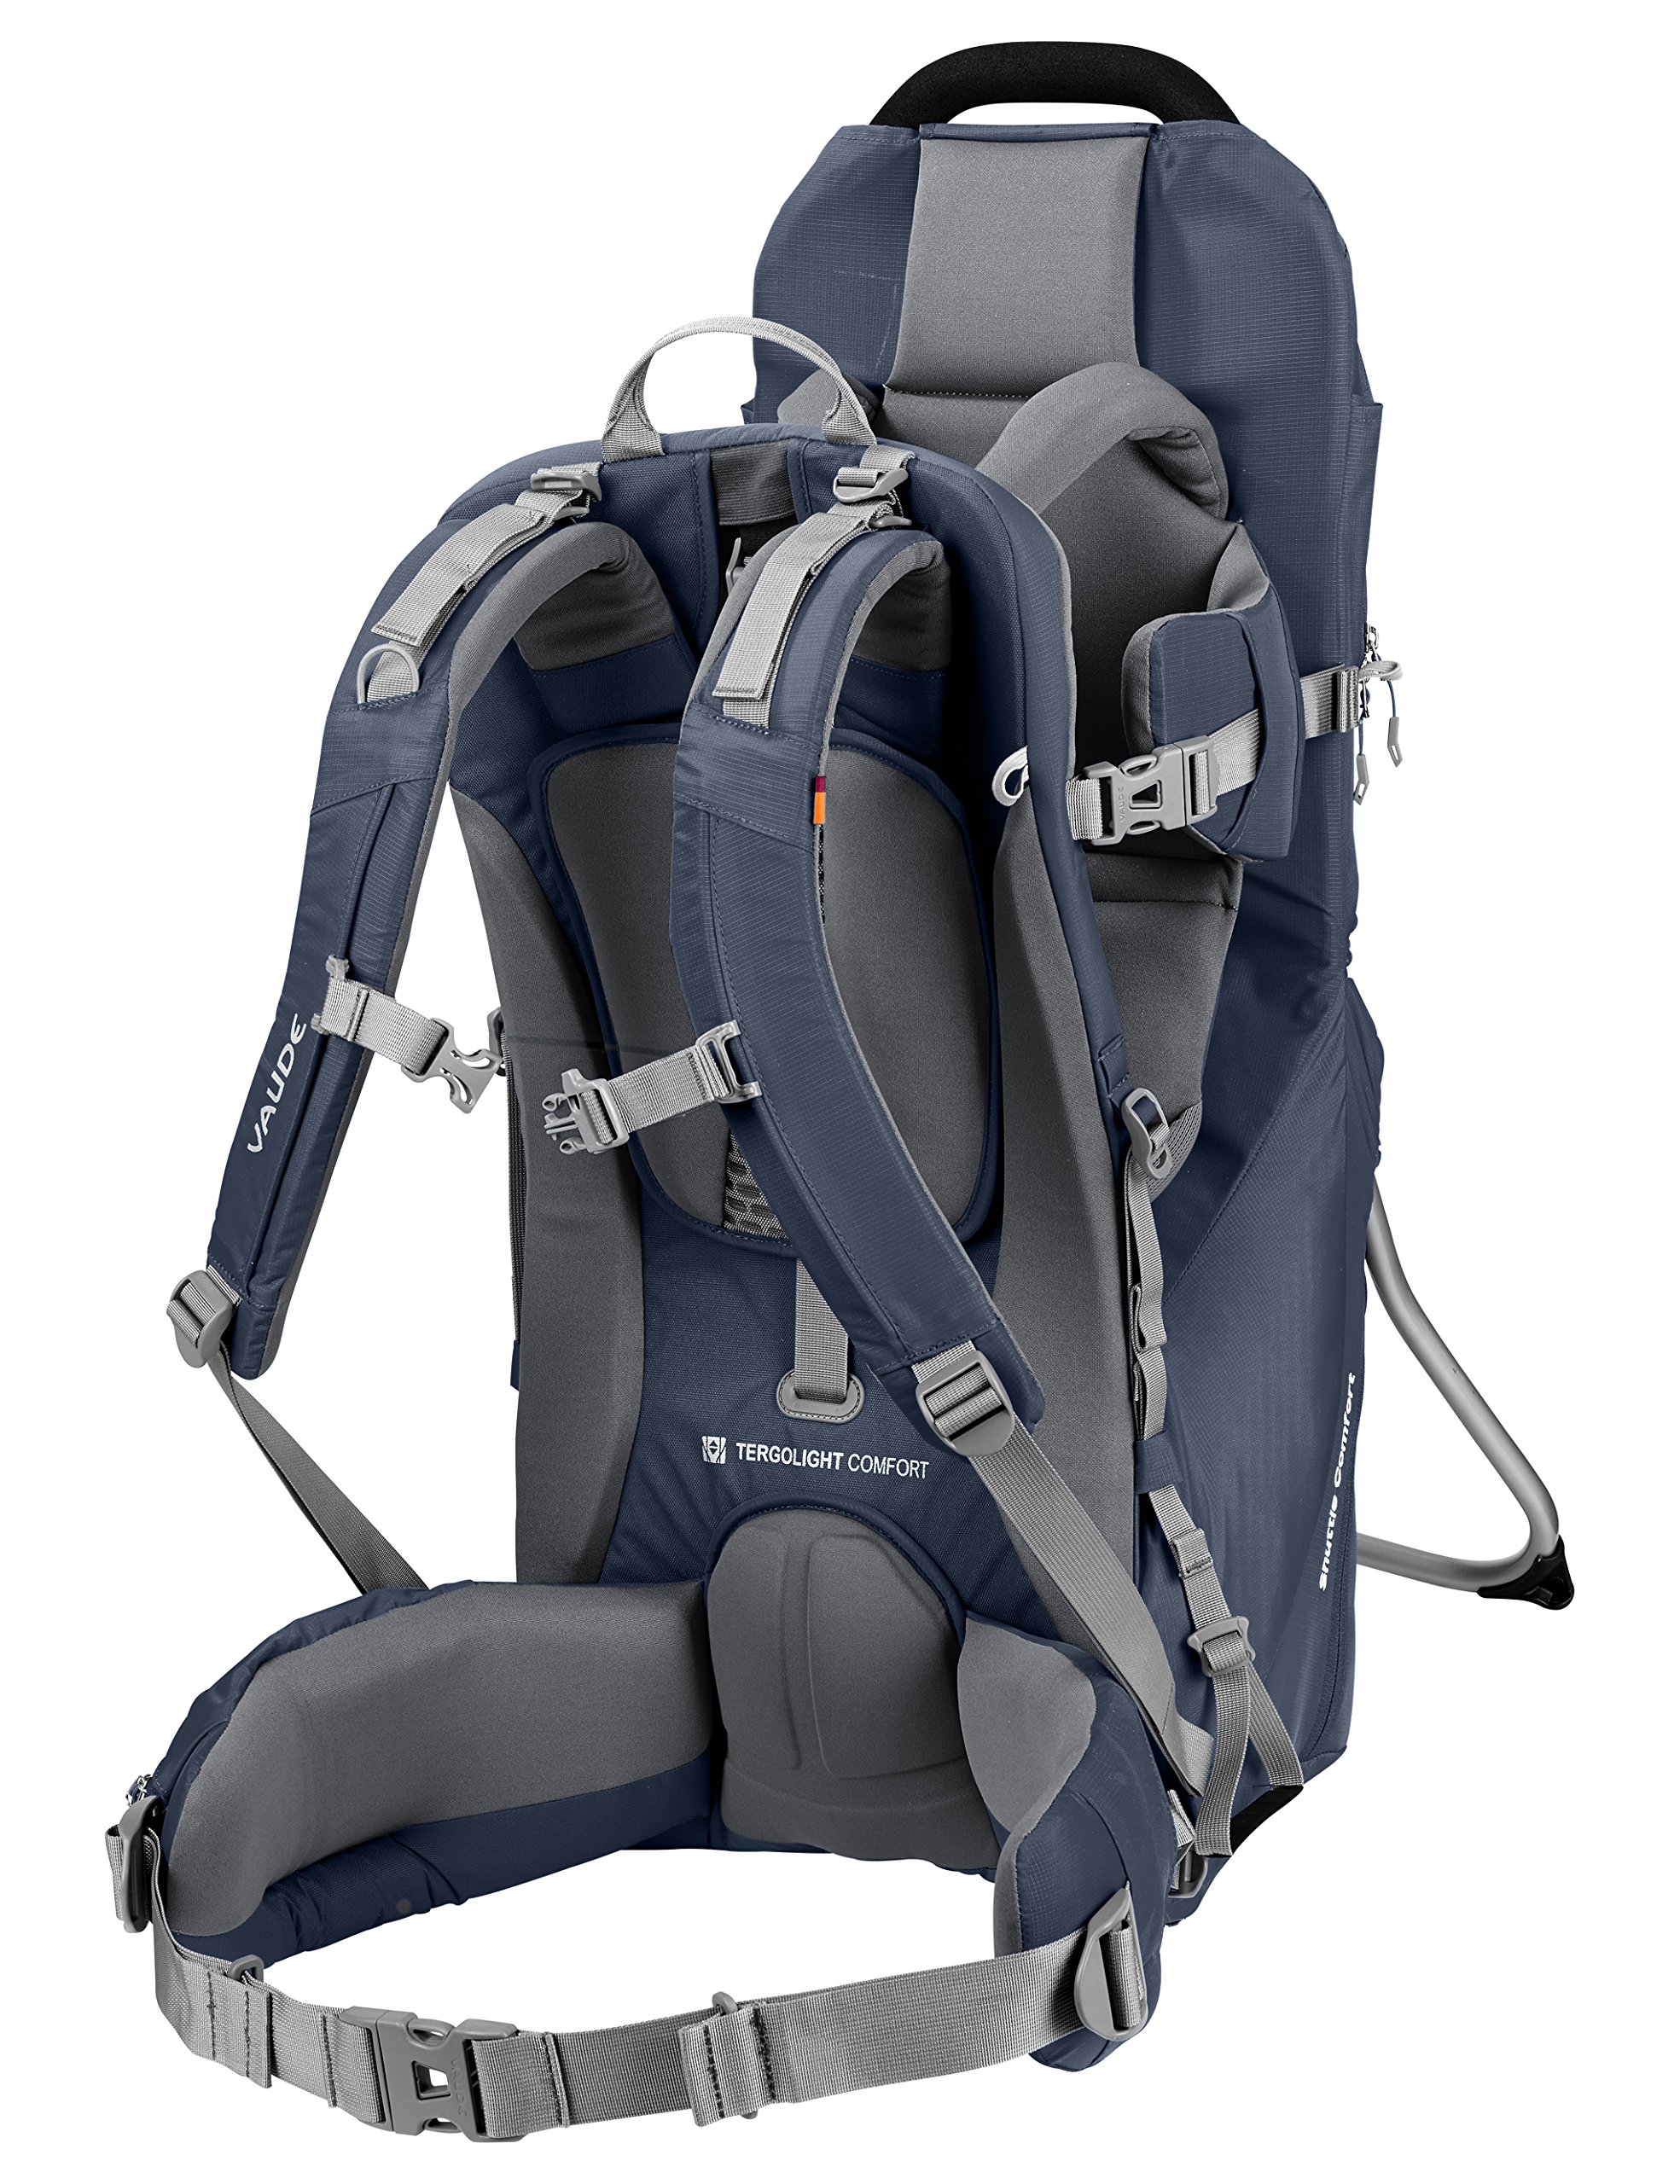 Vaude Shuttle Comfort Carrier Vaude Individually adjustable supportive back Adjustable seat height, torso support Separate bottom compartment, stowage compartment with zip 2